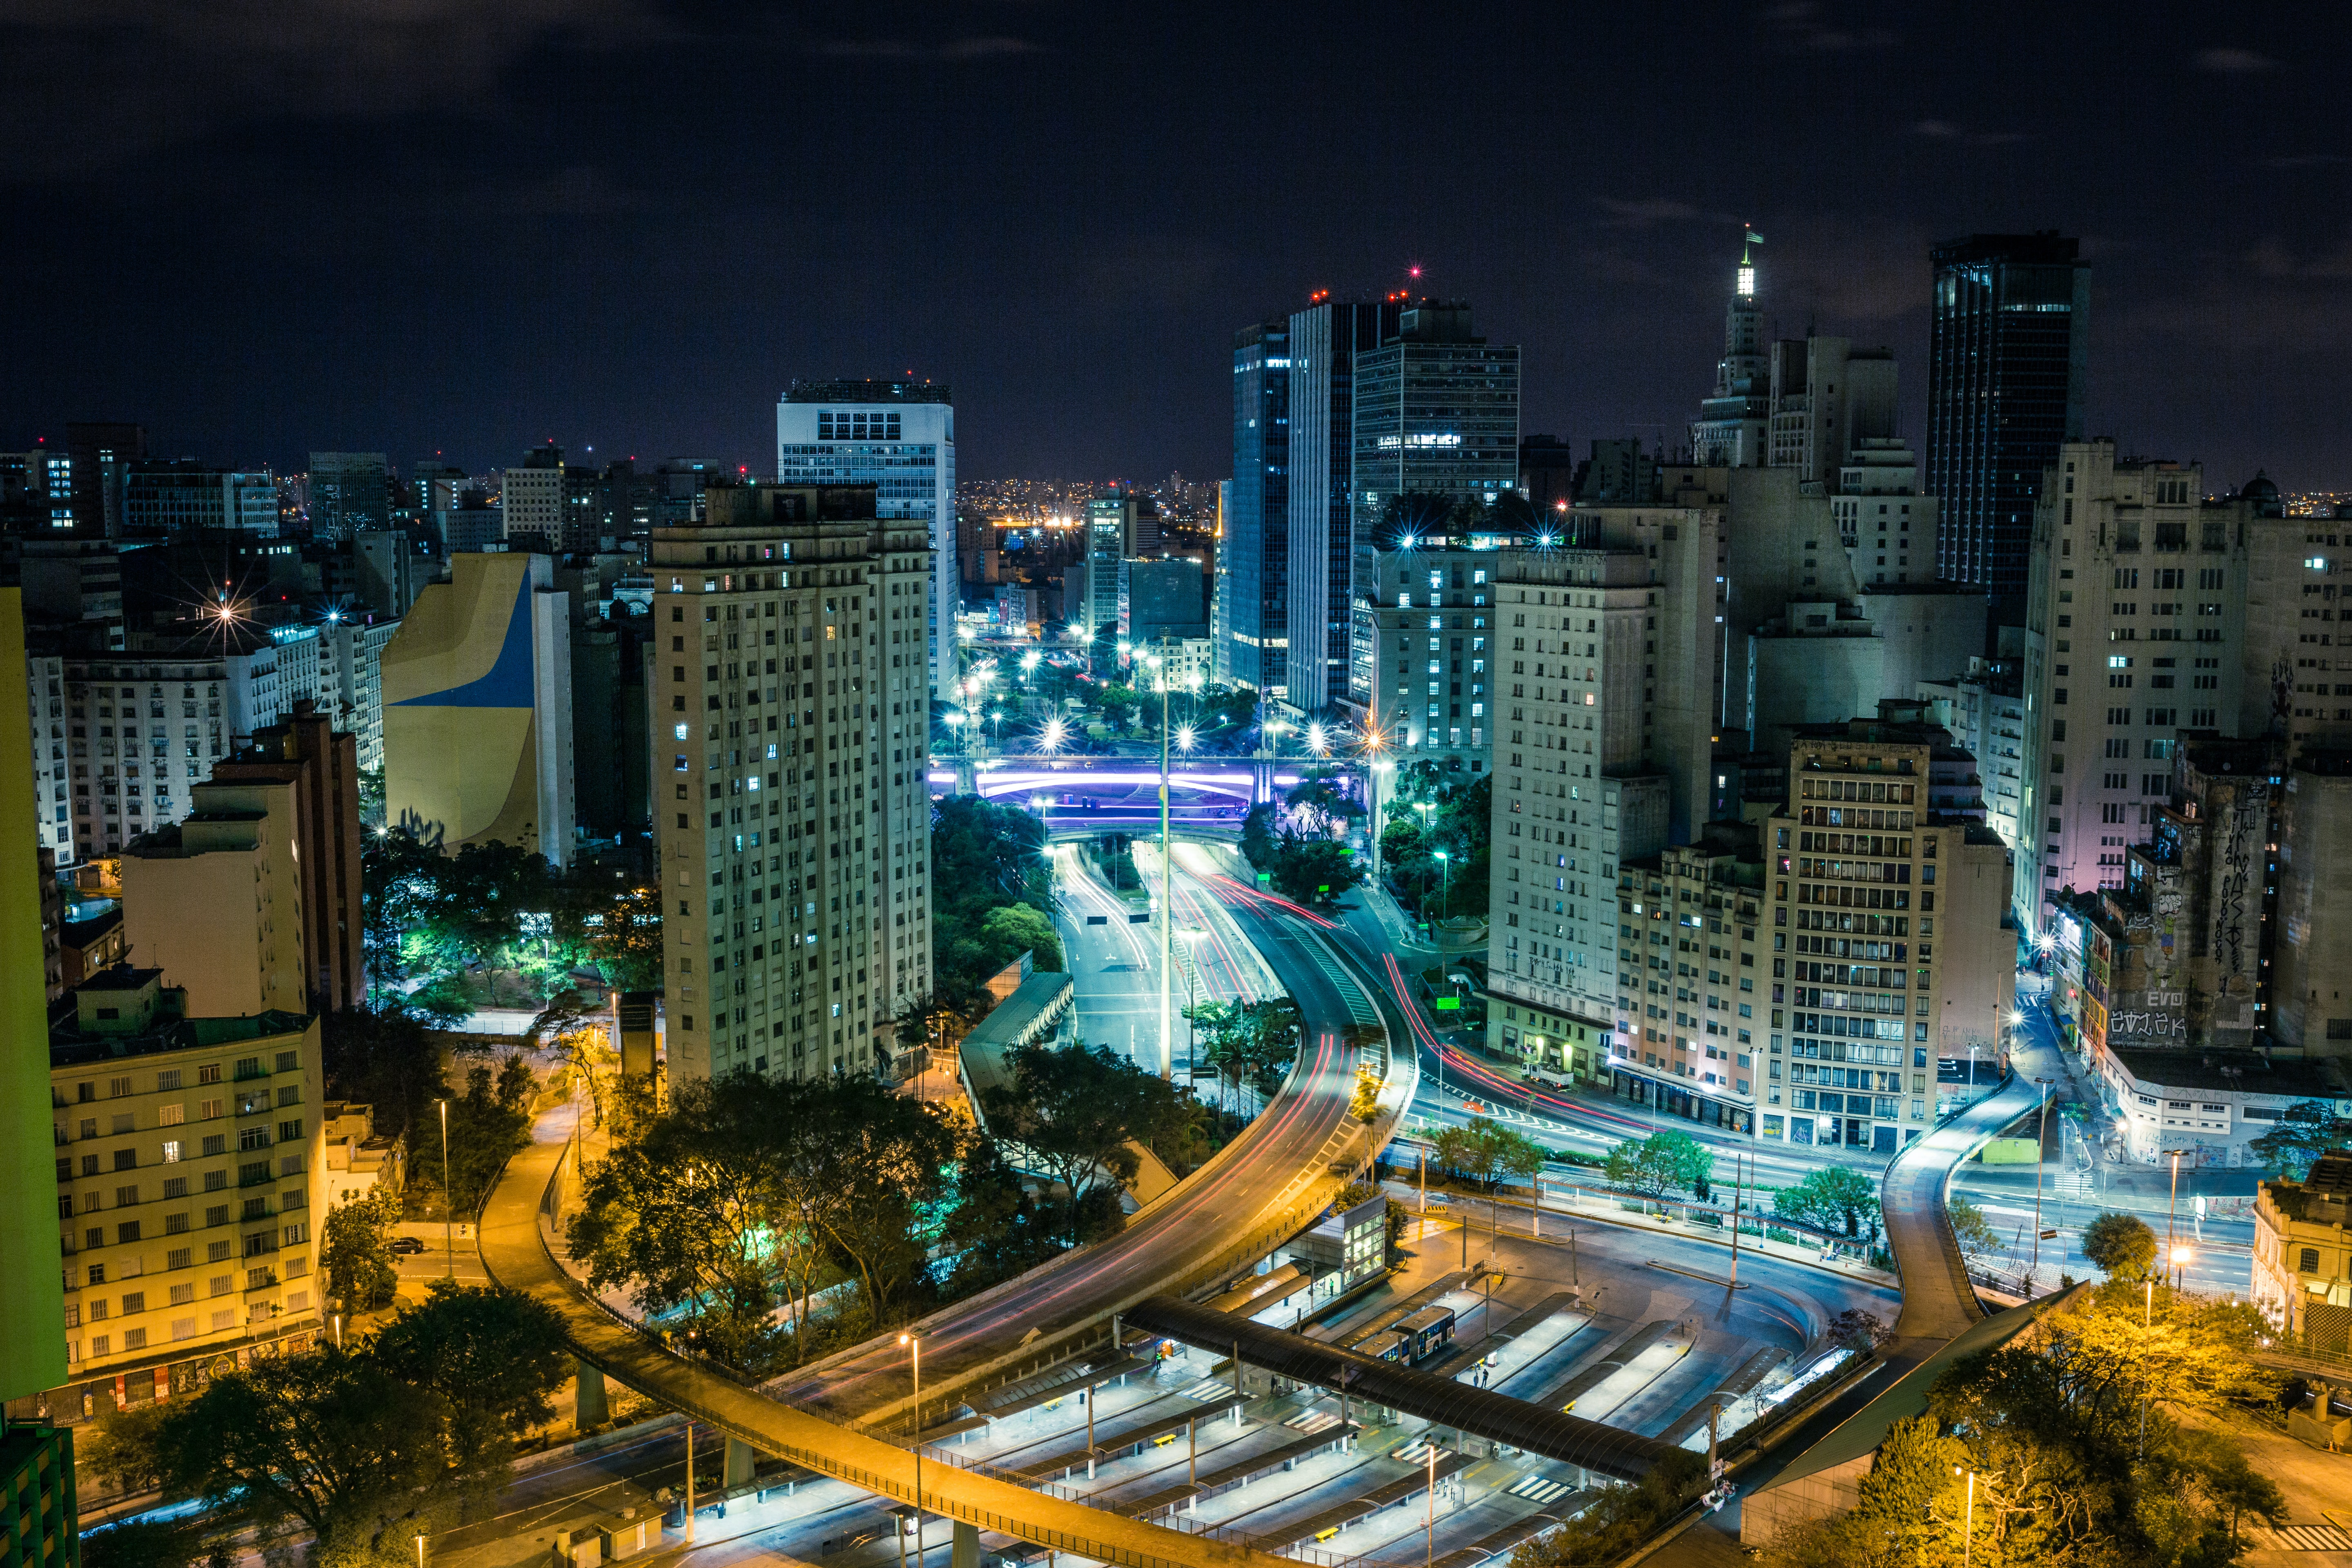 time lapse photography of a city highway